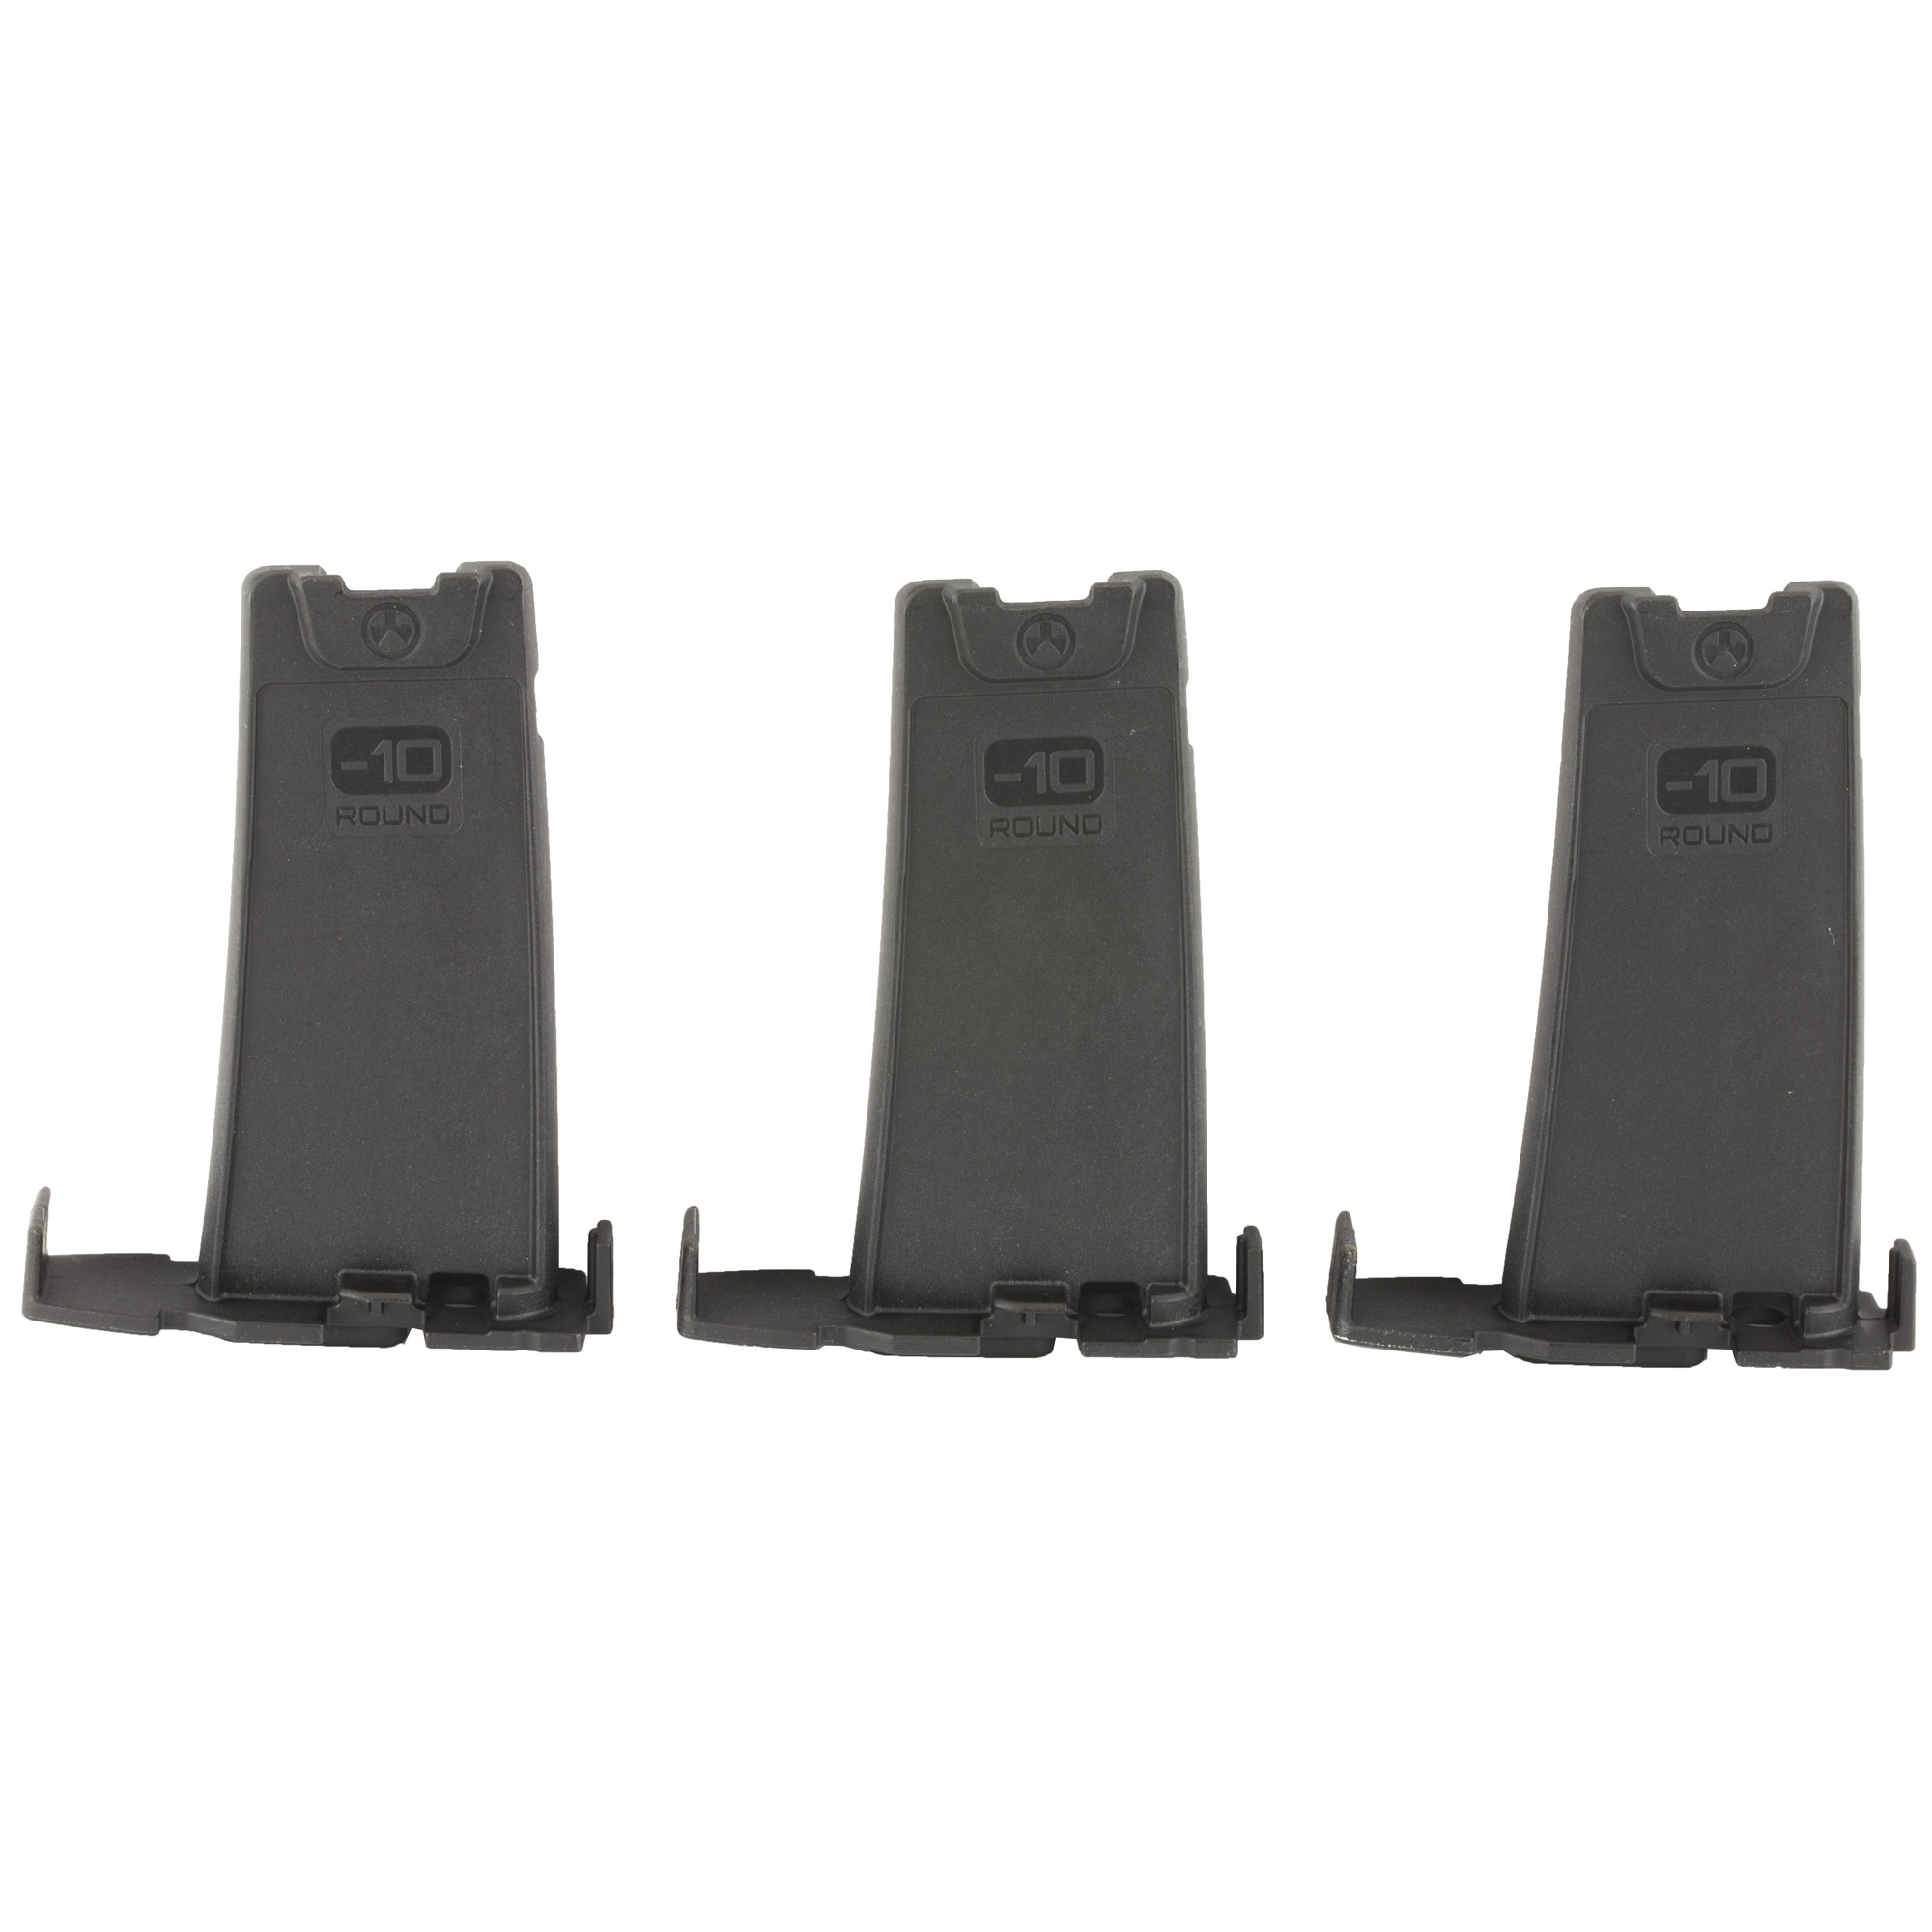 """The PMAG Minus 10 Round Limiter installs in 20 or 30 round GEN M3 PMAG bodies"""" reducing the magazine capacity by ten rounds. Designed for sporting and hunting applications"""" installation of the Limiter is simple"""" tool-less"""" and requires no permanent modification of the magazine body. NOTE: Will NOT make a banned magazine legal! This product is intended for TEMPORARY capacity reduction of PMAG AR/M4 GEN M3 magazines. This product does not constitute a permanent capacity reduction. The user is responsible for knowing applicable laws in any jurisdiction that restricts magazines based on capacity or regulates magazine capacity for hunting. Please check all laws and regulations of your state and locality to determine the legality of your host ammunition magazines."""